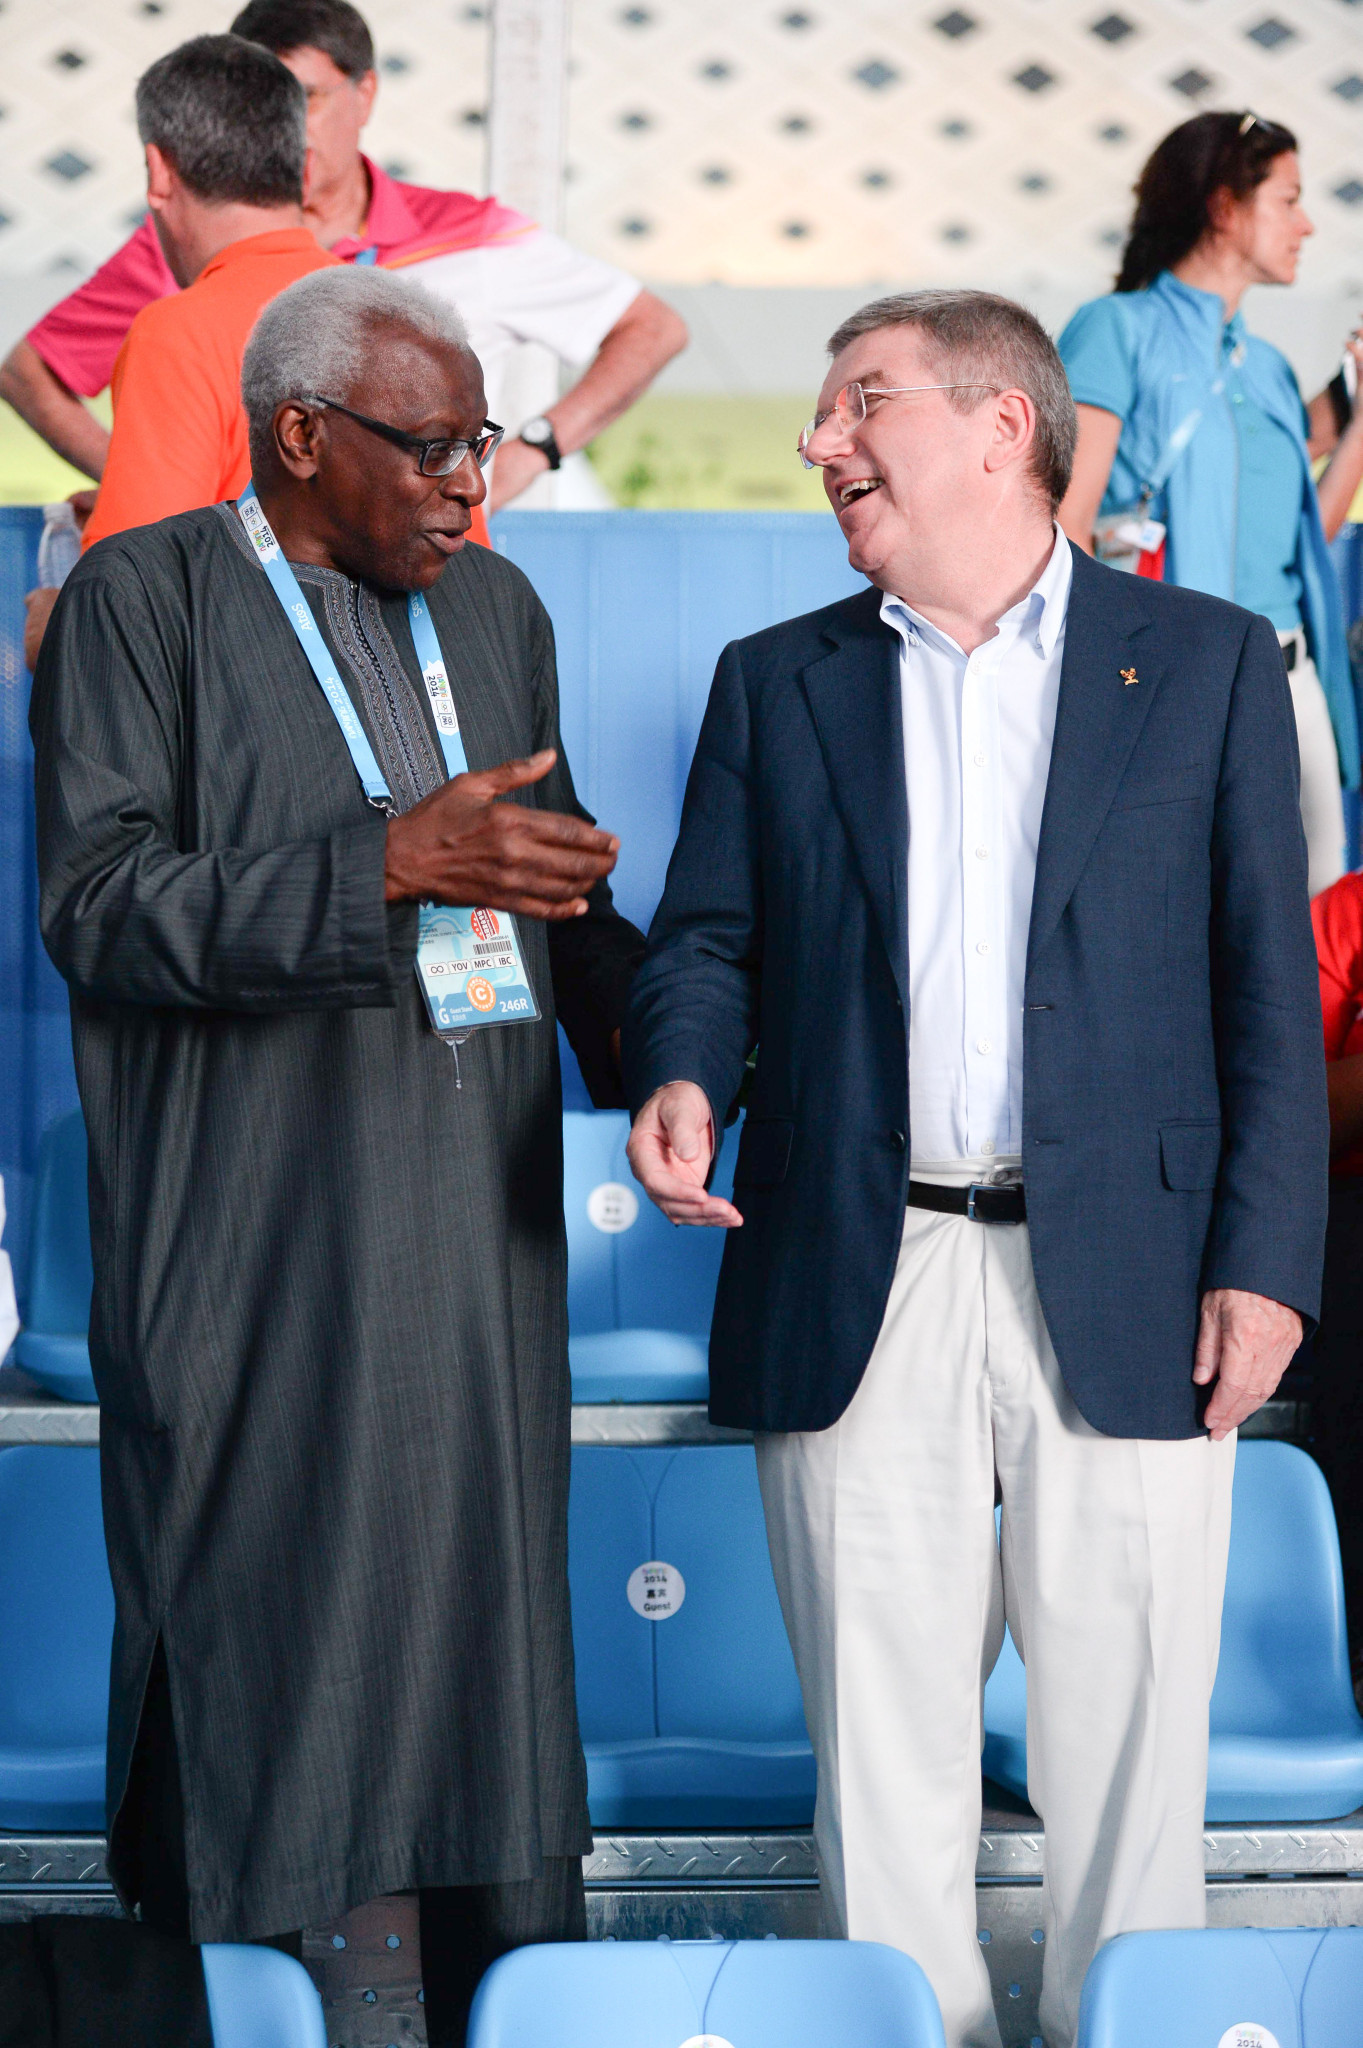 IOC President Thomas Bach, right, has claimed corruption allegations against former IAAF head Lamine Diack, left, have nothing to do with the Summer Youth Olympic Games due to take place in Dakar in 2022 ©Getty Images